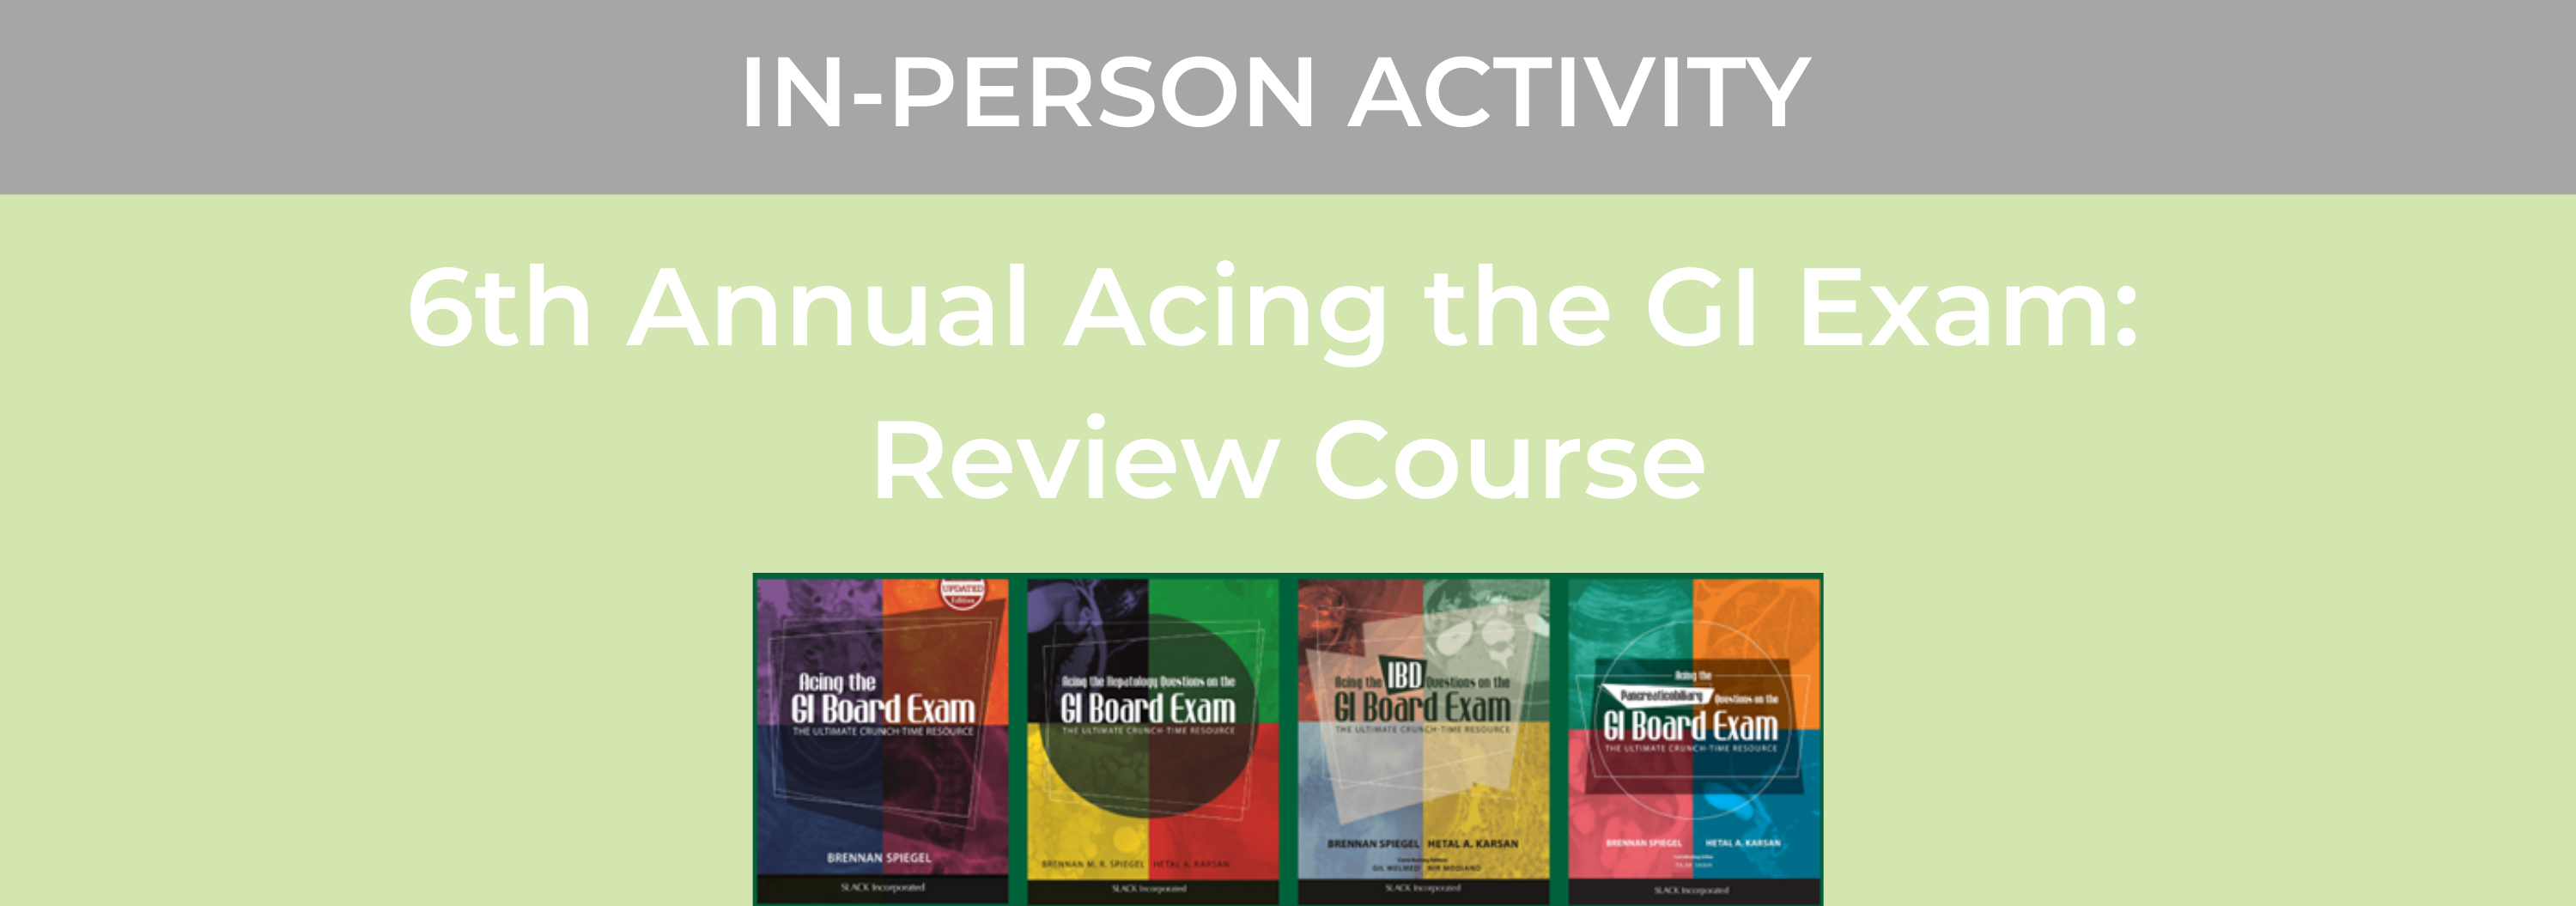 6th Annual Acing the GI Exam: Review Course Banner